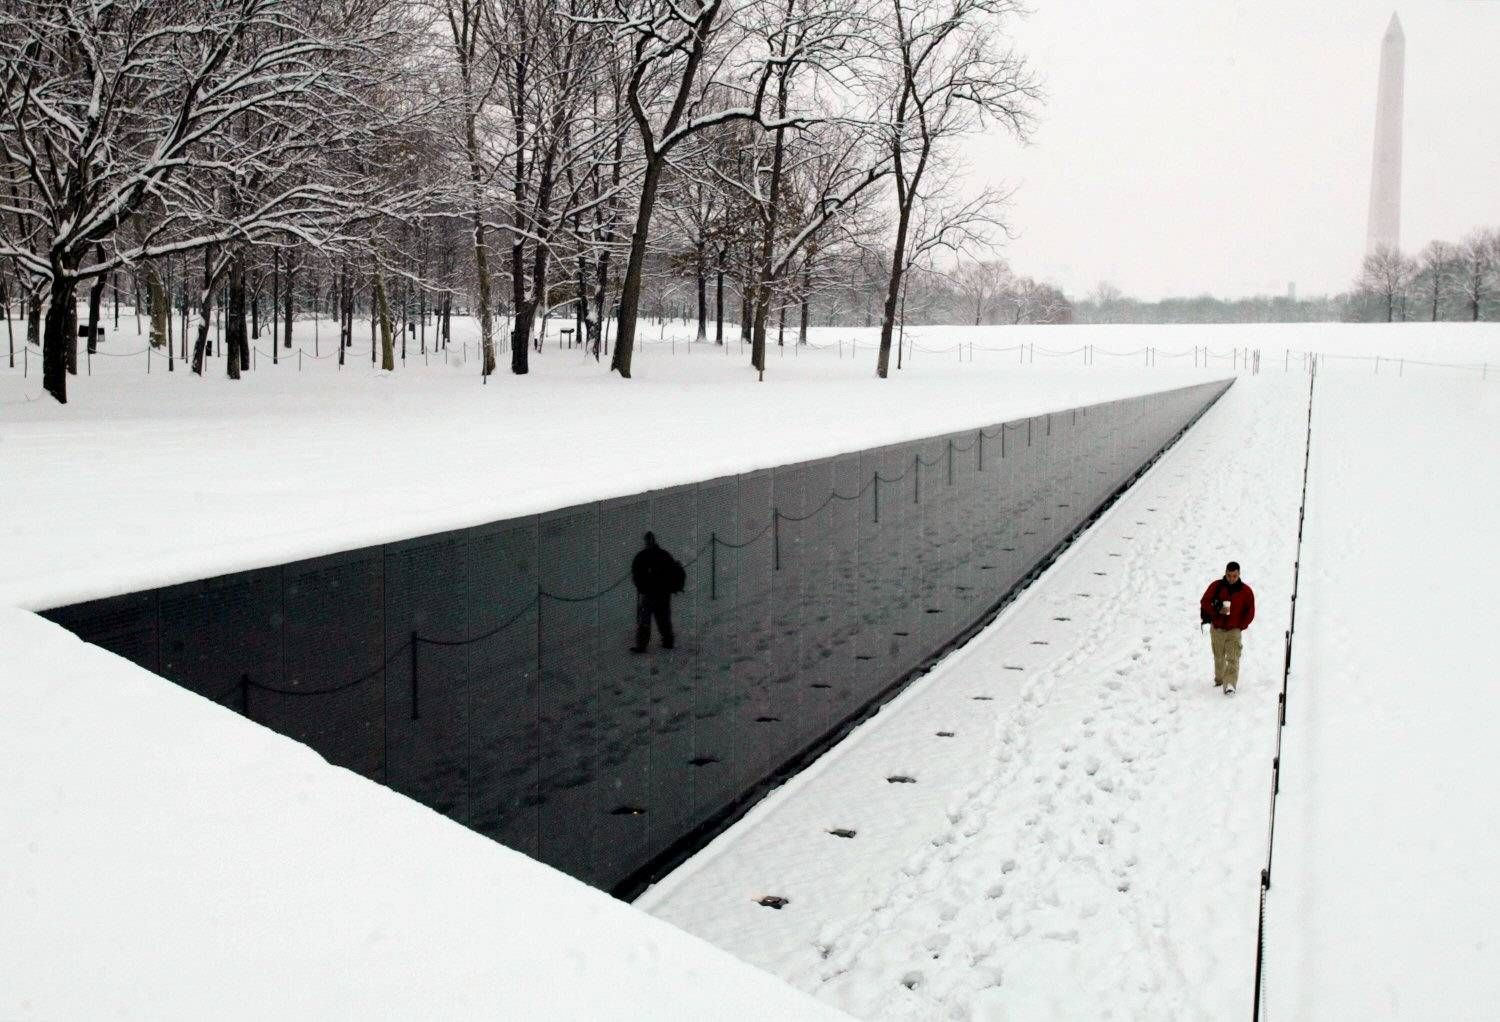 artists - Who Designed The Vietnam Wall